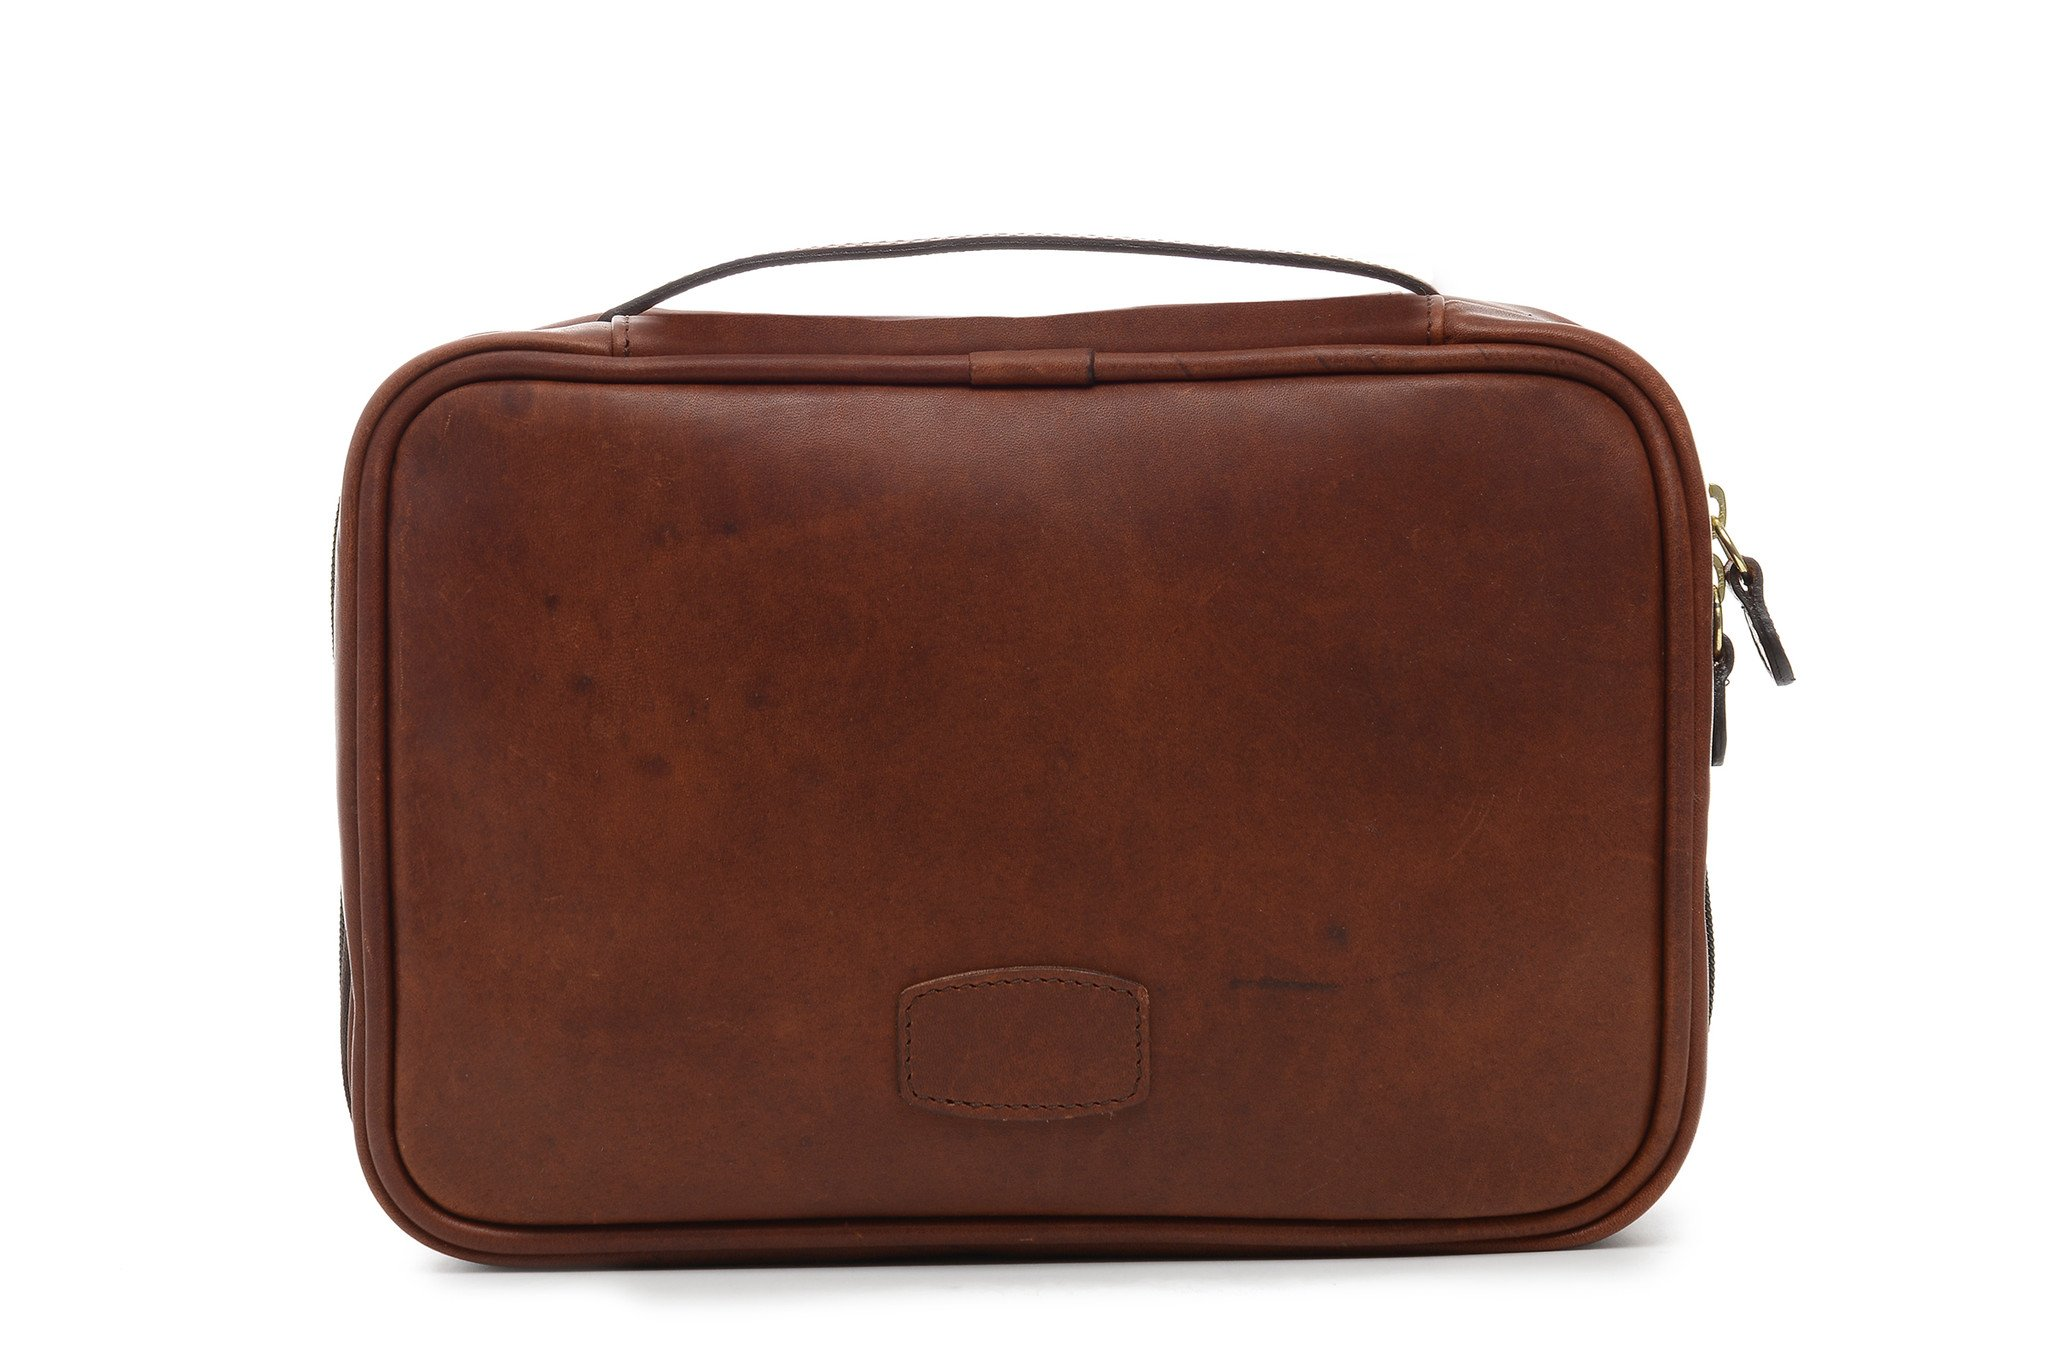 Korchmar Quinton Leather Hanging Toiletry Case, Travel Kit in Espresso